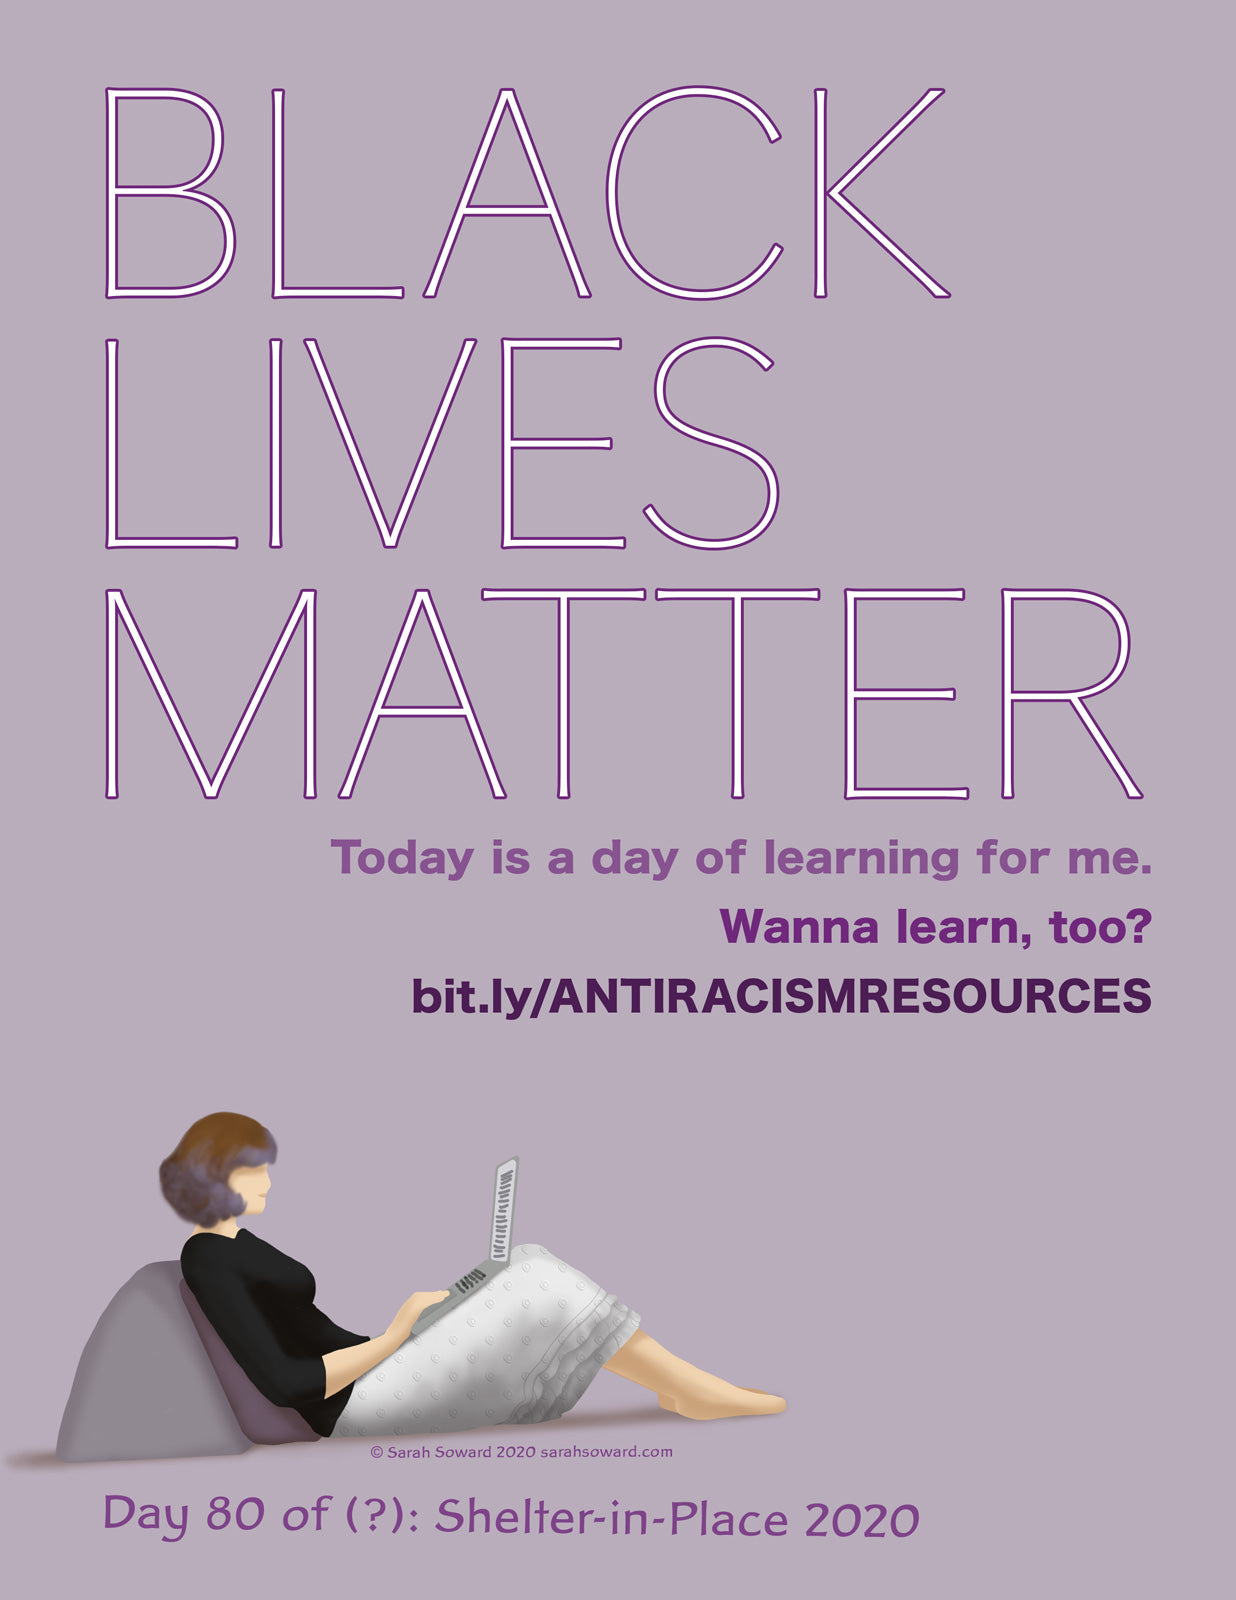 The text on the image reads, Black Lives Matter, Today is a day of learning for me. Wanna learn, too? bit.ly/ANTIRACISMRESOURCES. A woman in a white skirt and black top reclines, reading info on her laptop.